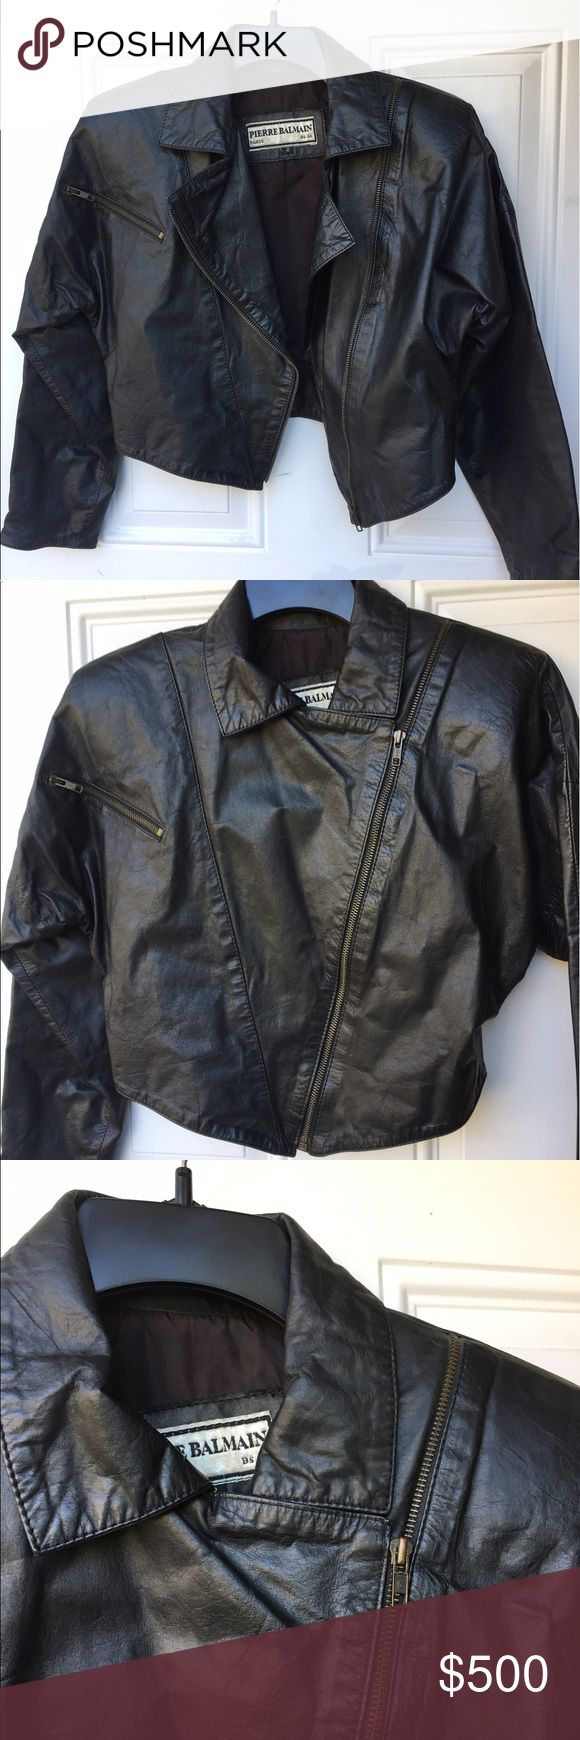 Leather jacket under 500 - Pierre Balmain Leather Jacket From The 80s